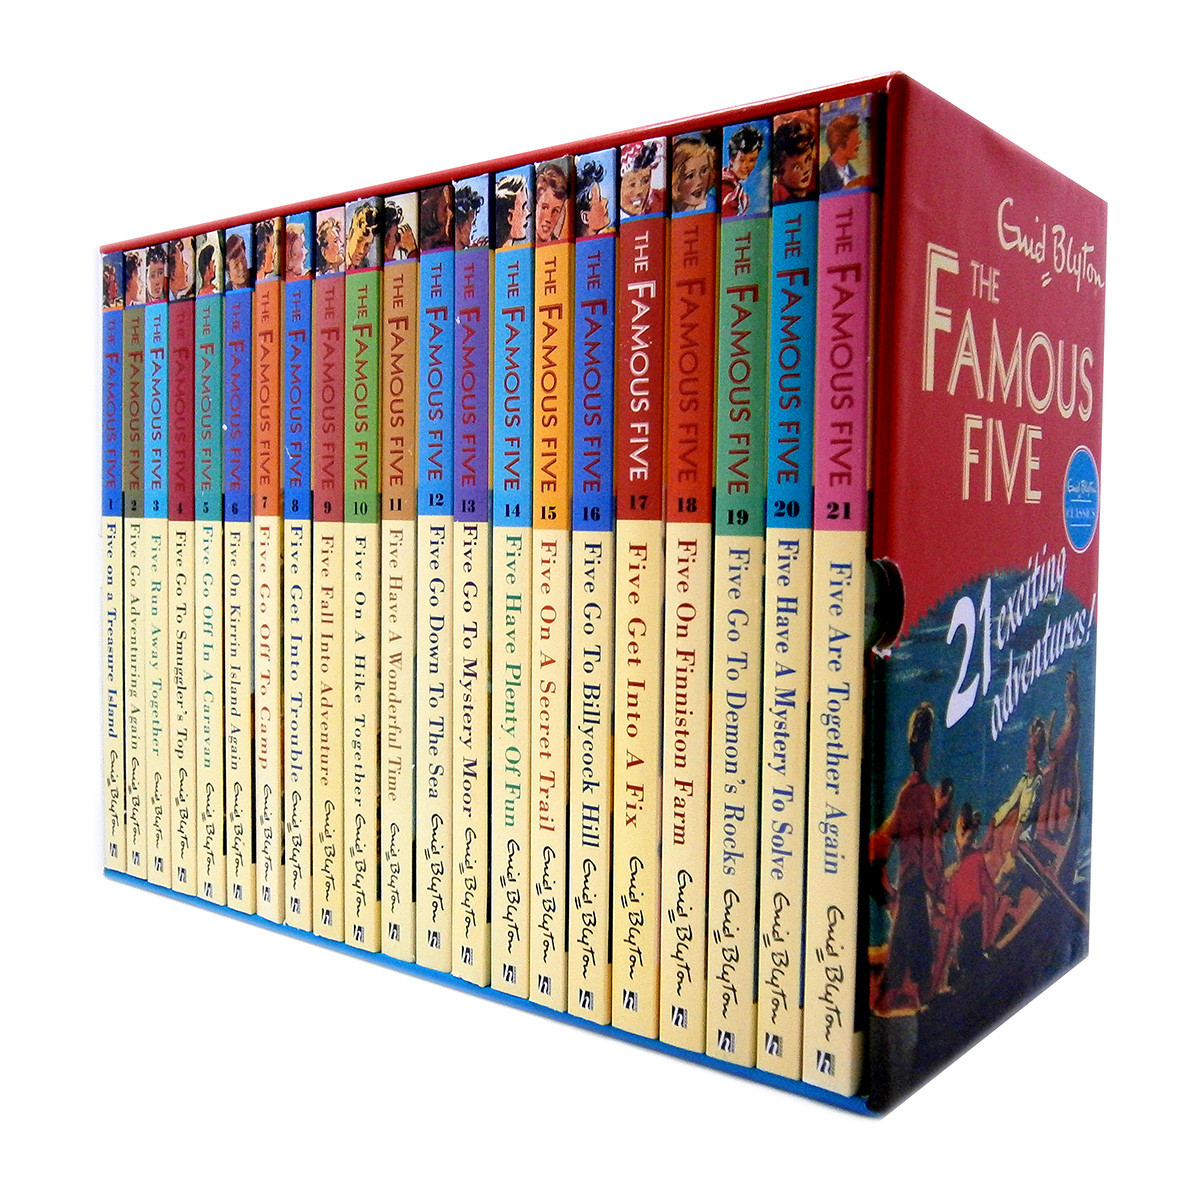 Enid Blyton Famous Five Series, 21 Books Box Collection Pack Set by Enid Blyton, ISBN: 9781444931013